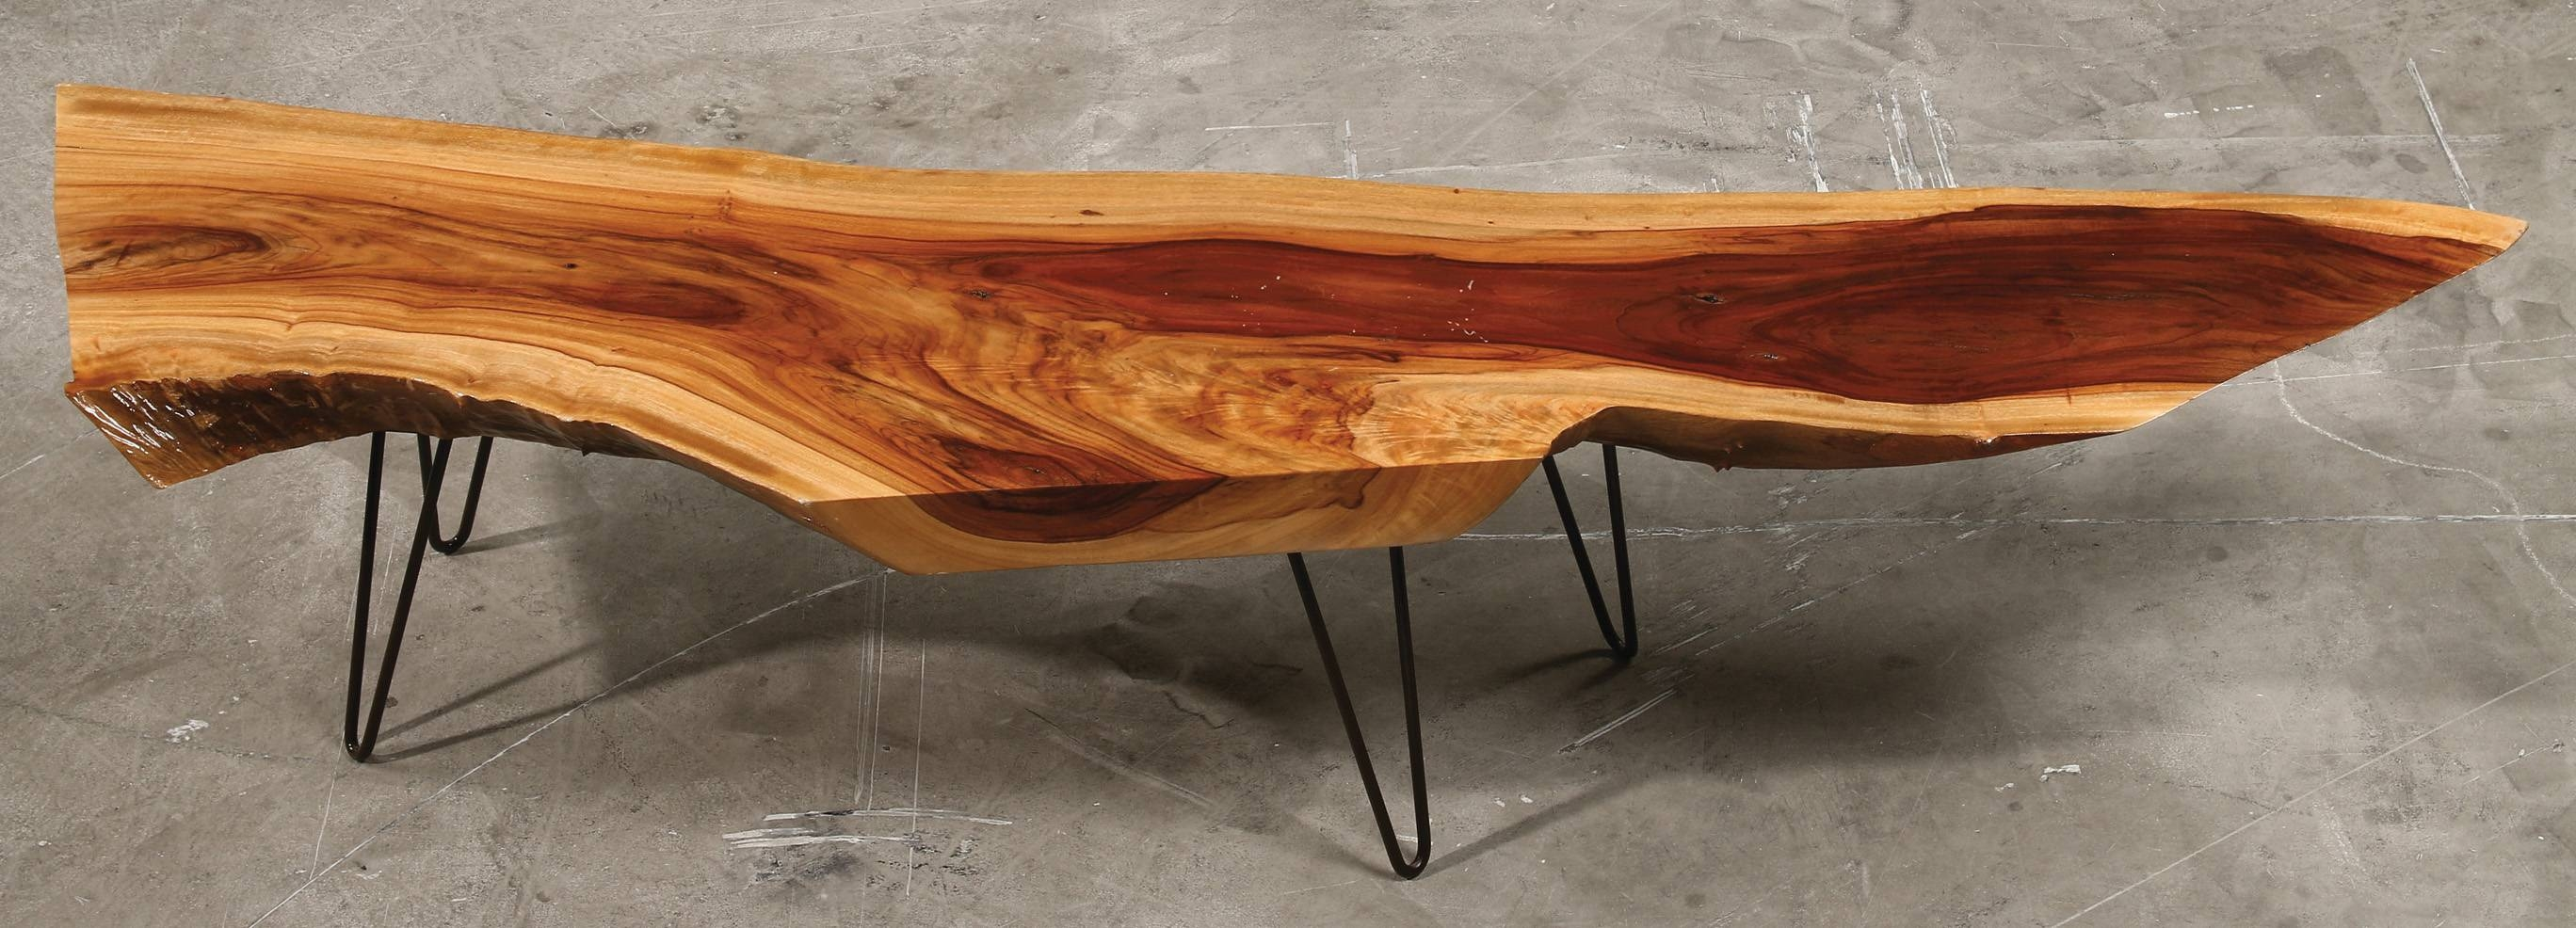 Customized Coffee And Console Tableswood Fusion inside Natural Wood Coffee Tables (Image 5 of 15)